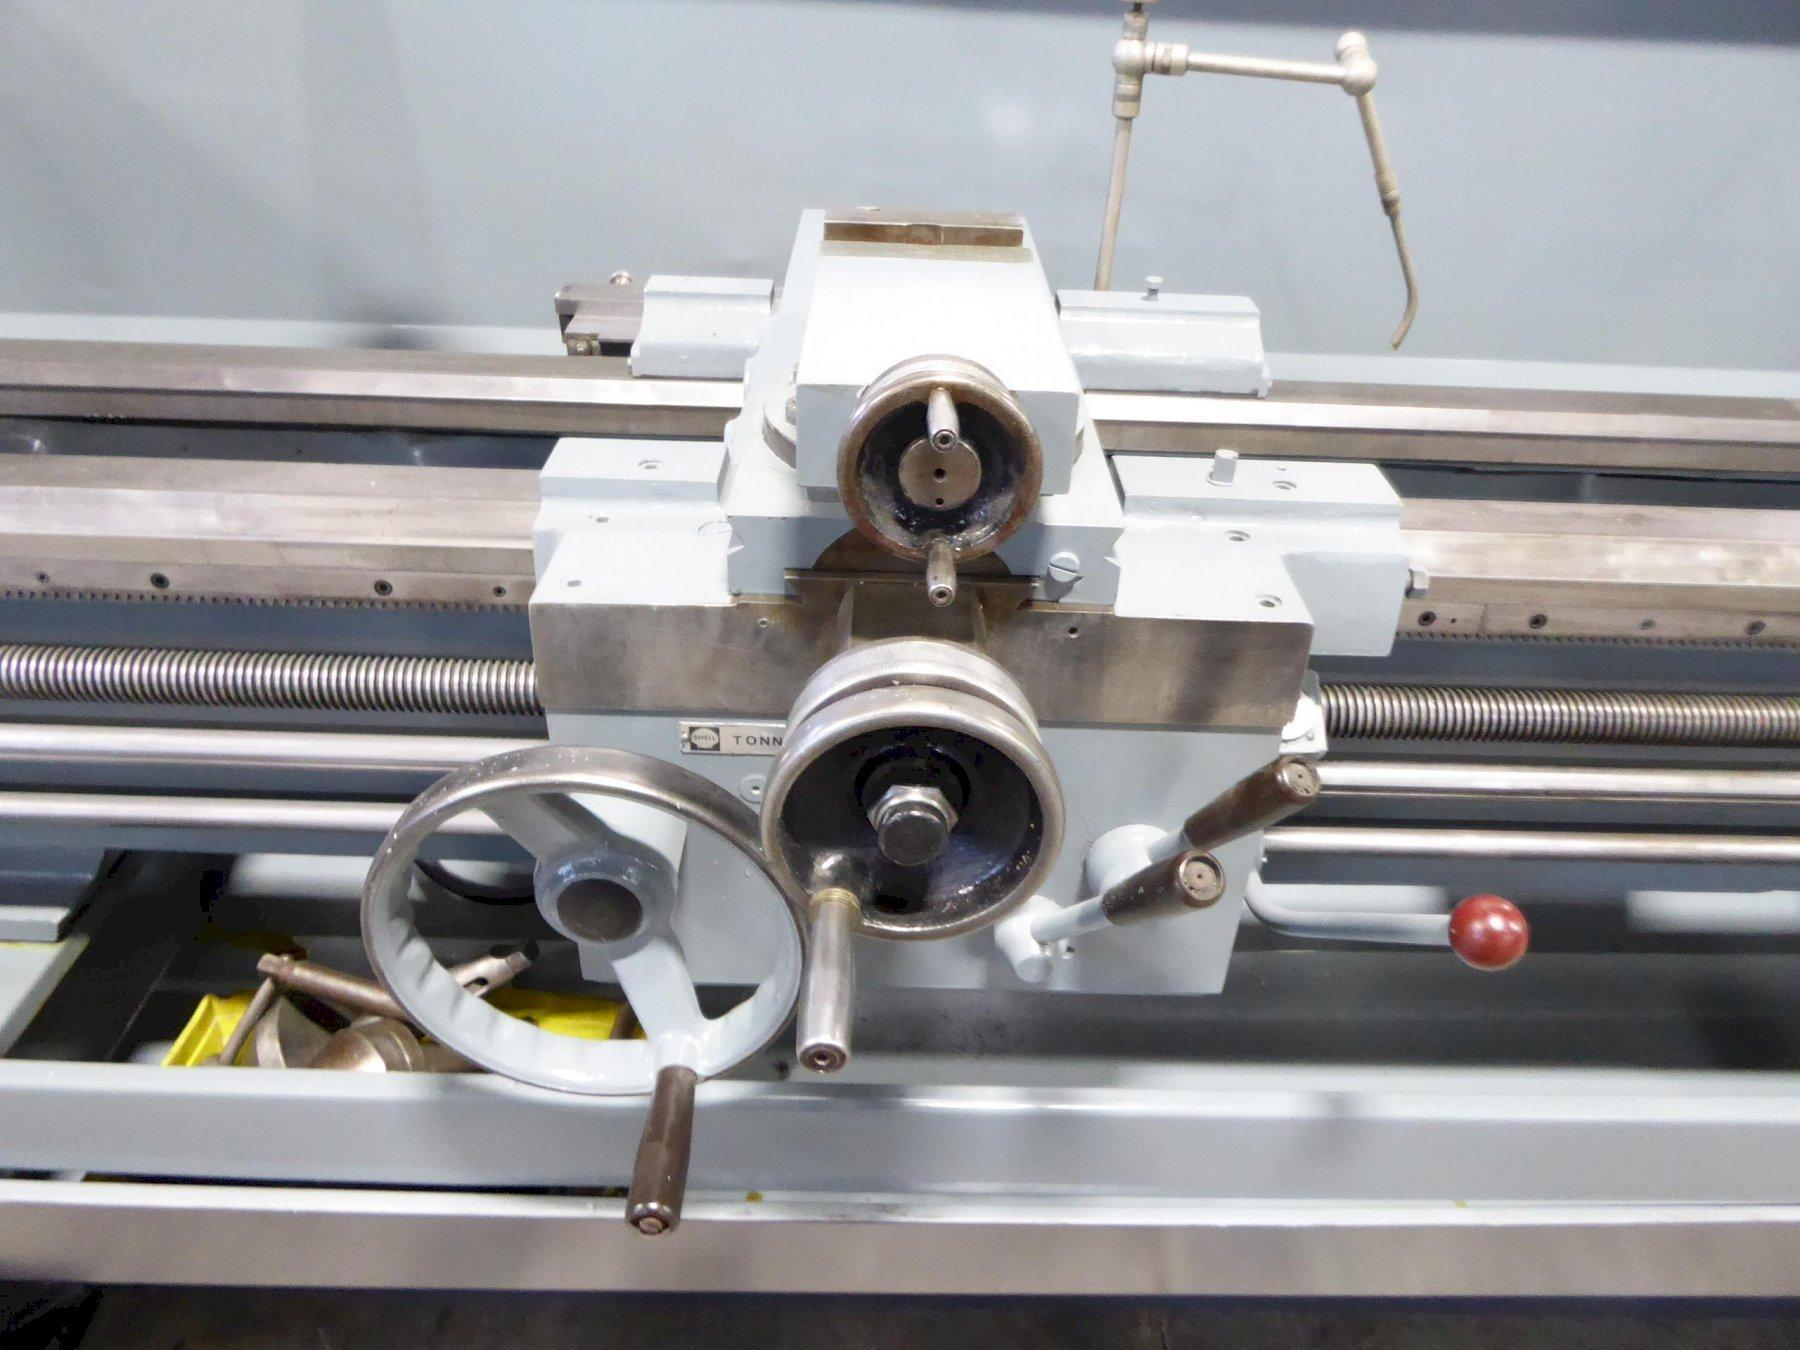 17″ x 80″ Clausing Colchester Lathe, 20-1600 RPM, Inch/mm, 3″ Hole, Taper, 10 HP